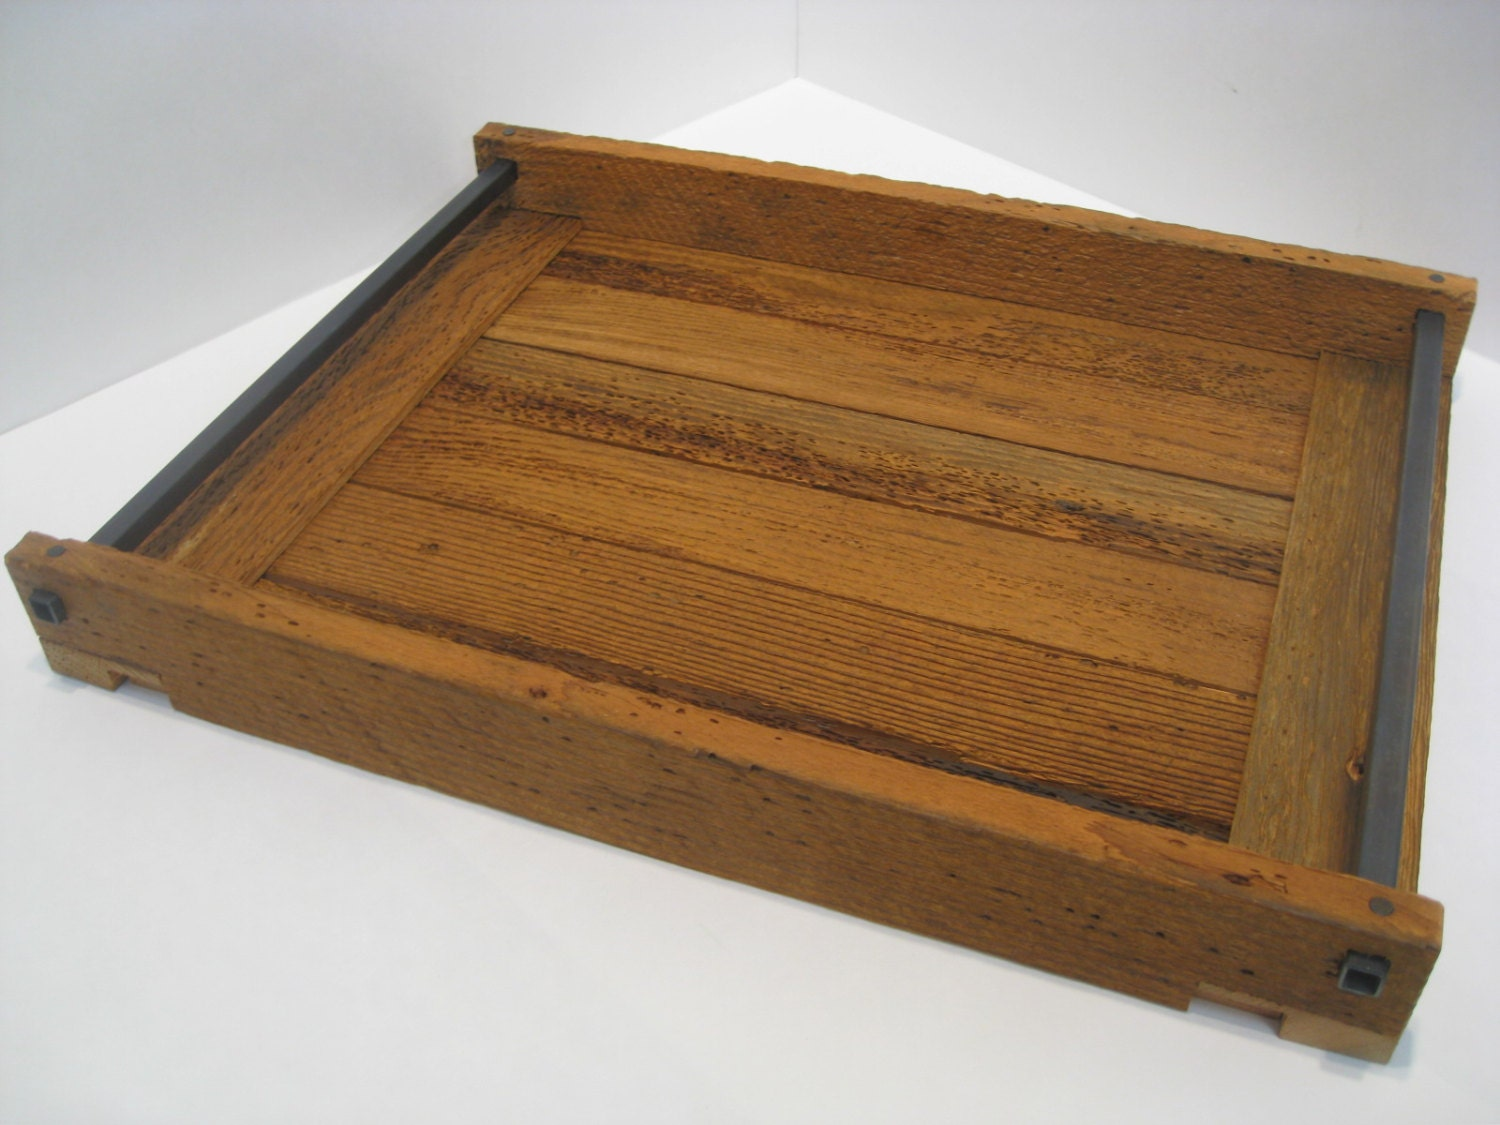 Wonderful image of Serving Tray / Ottoman Tray / Wood Serving Tray by recovereddesign with #8F6130 color and 1500x1125 pixels